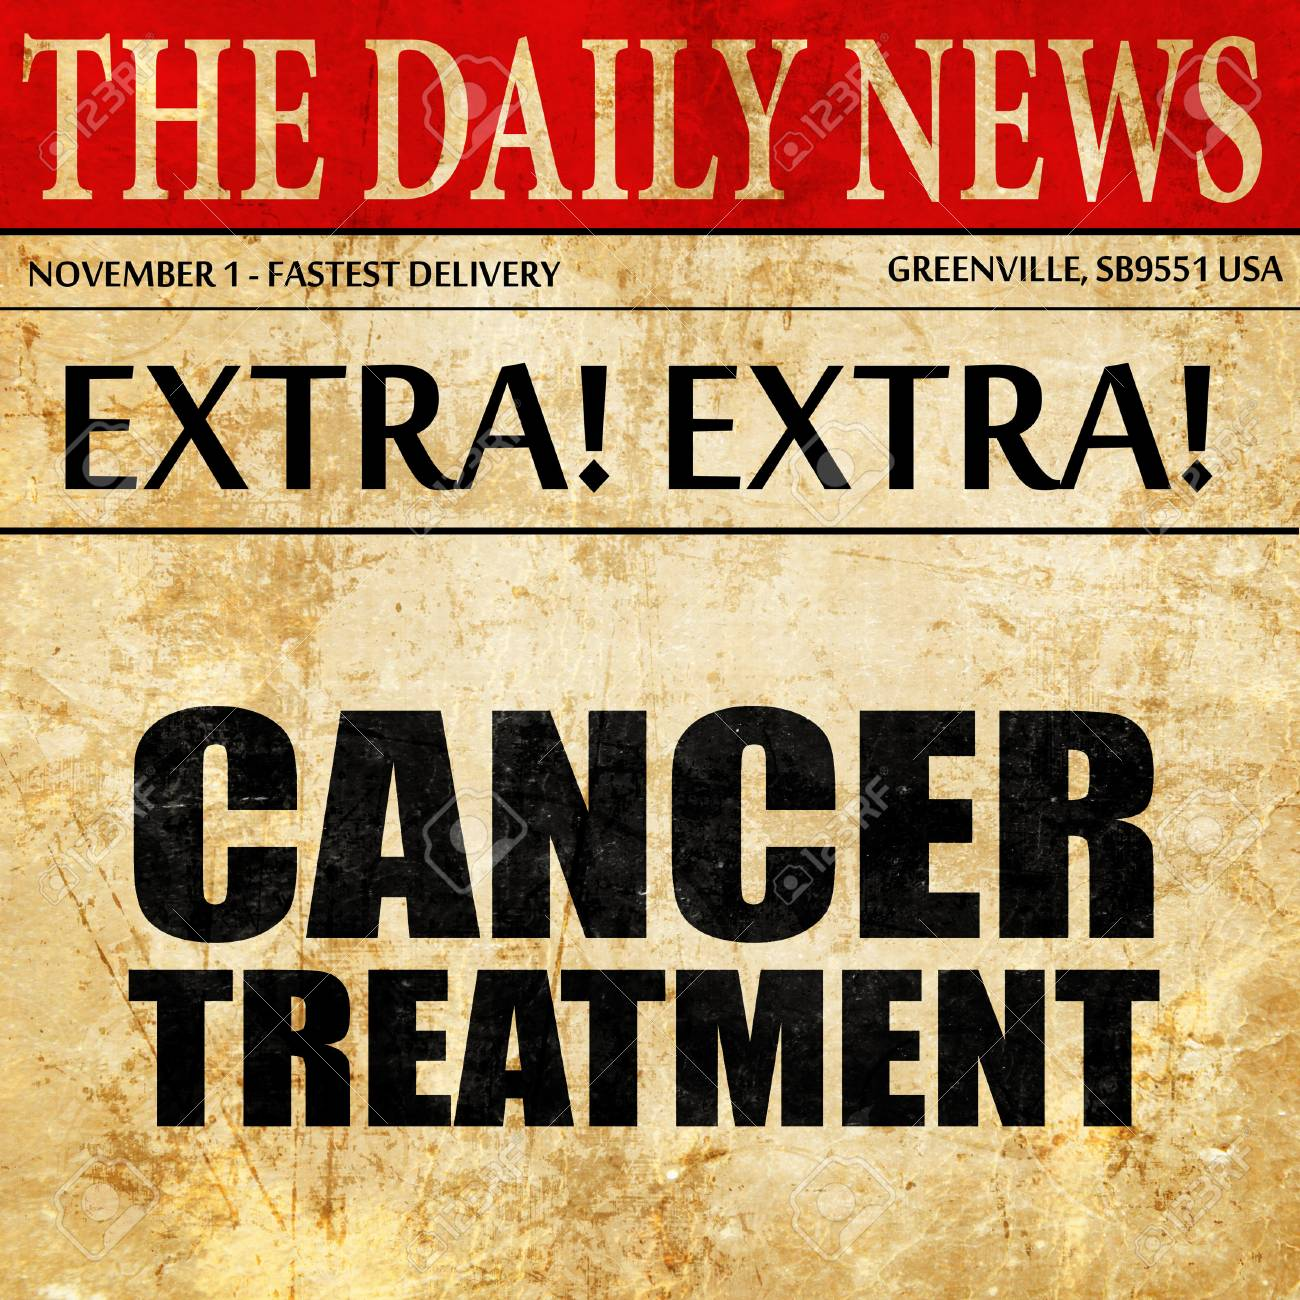 cancer treatment, newspaper article text